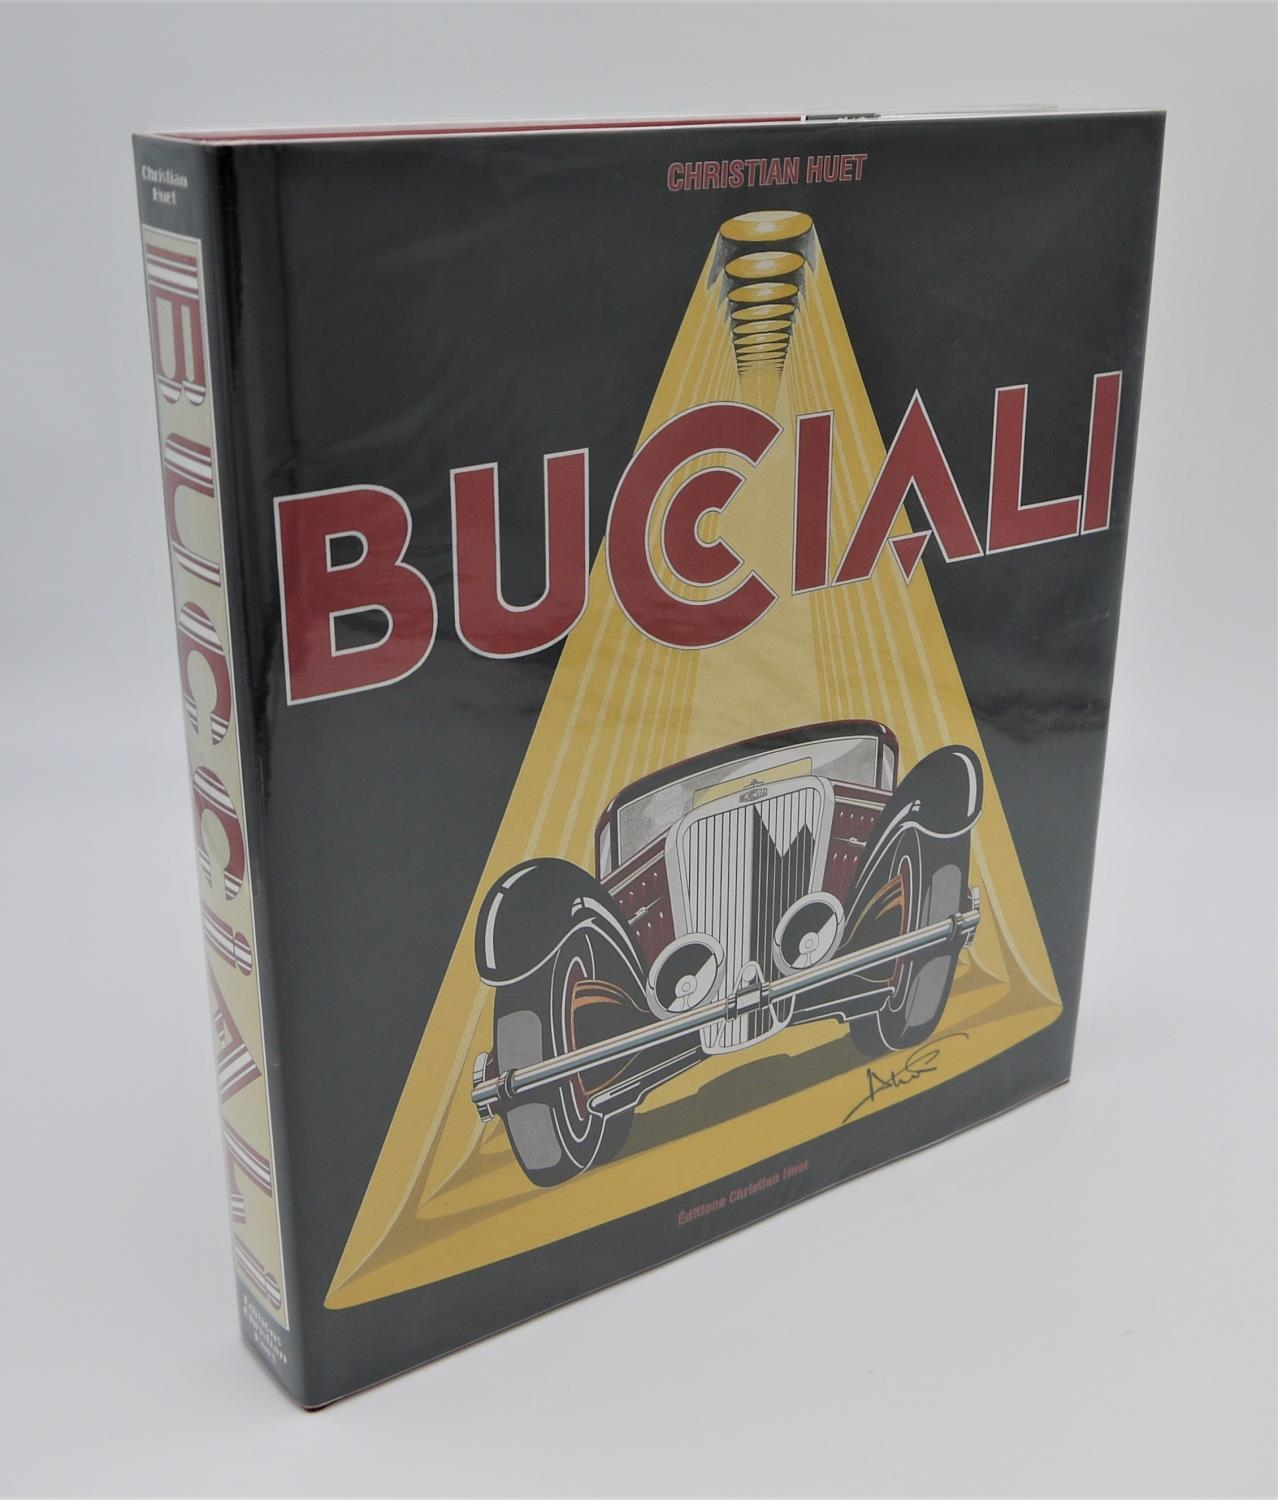 CHRISTIAN HUET: BUCCIALI story of the bucciali brothers who built a few fascinating sports cars in